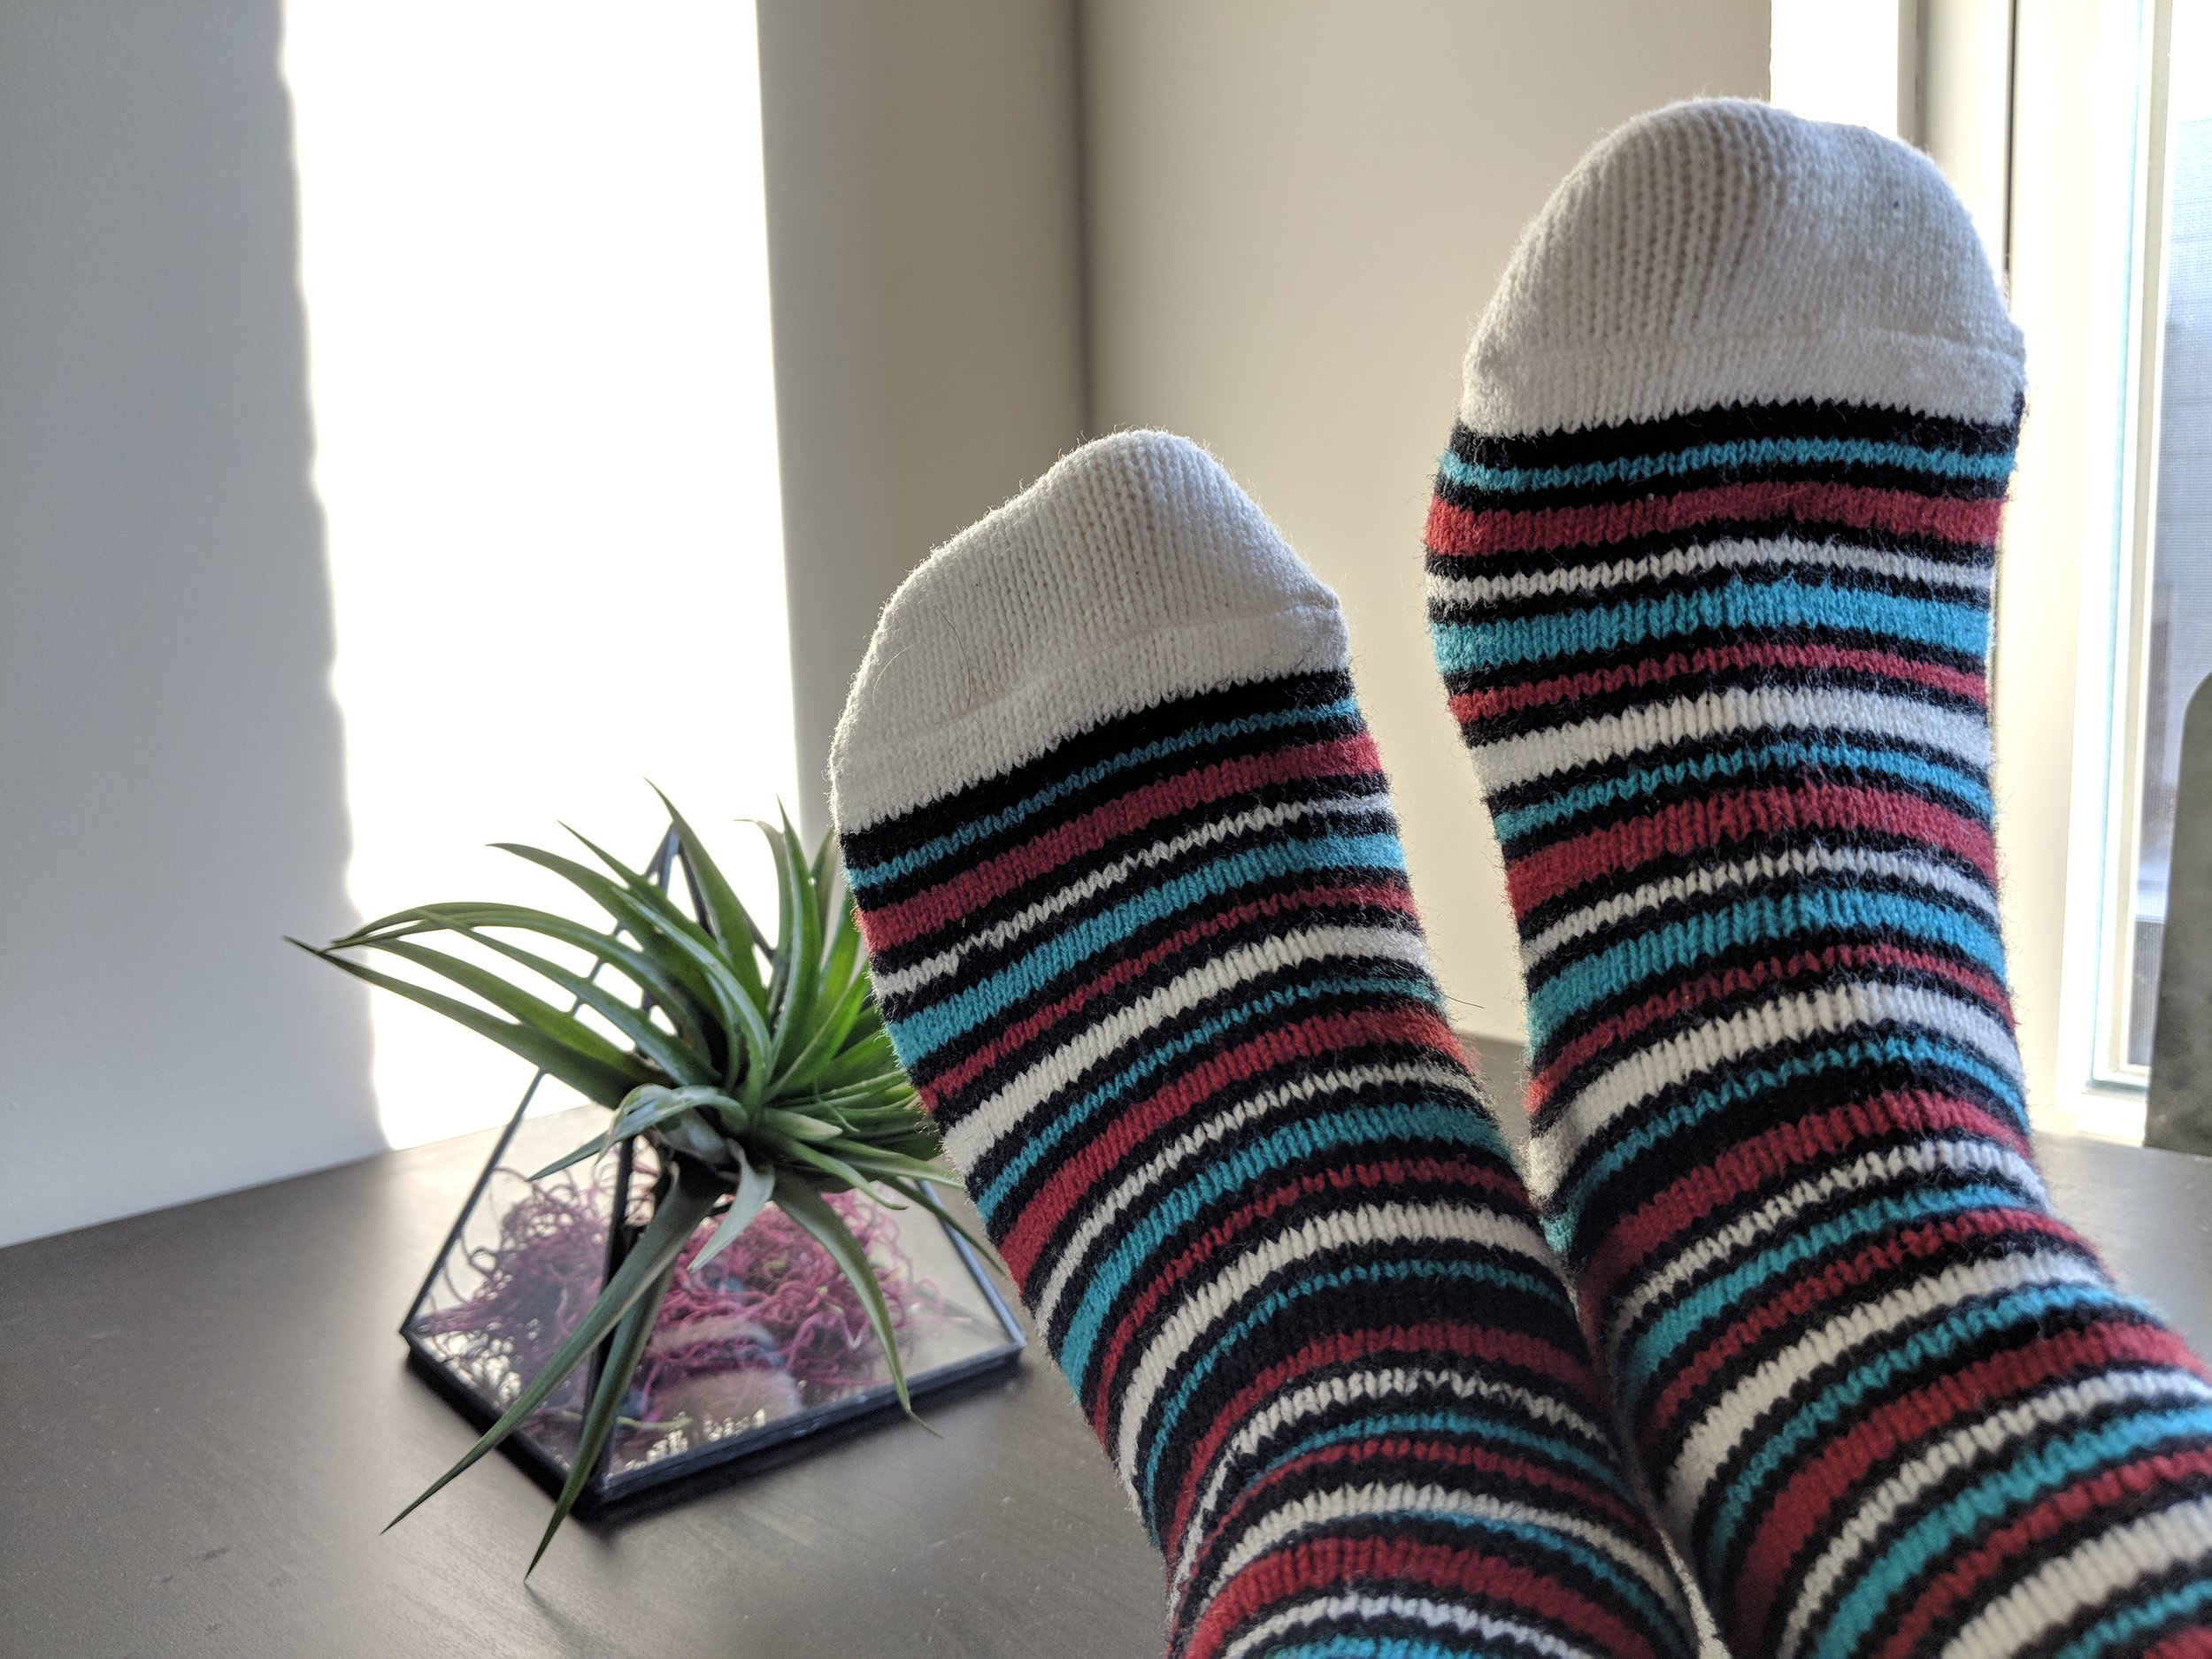 Photo Credit: The Sock Review